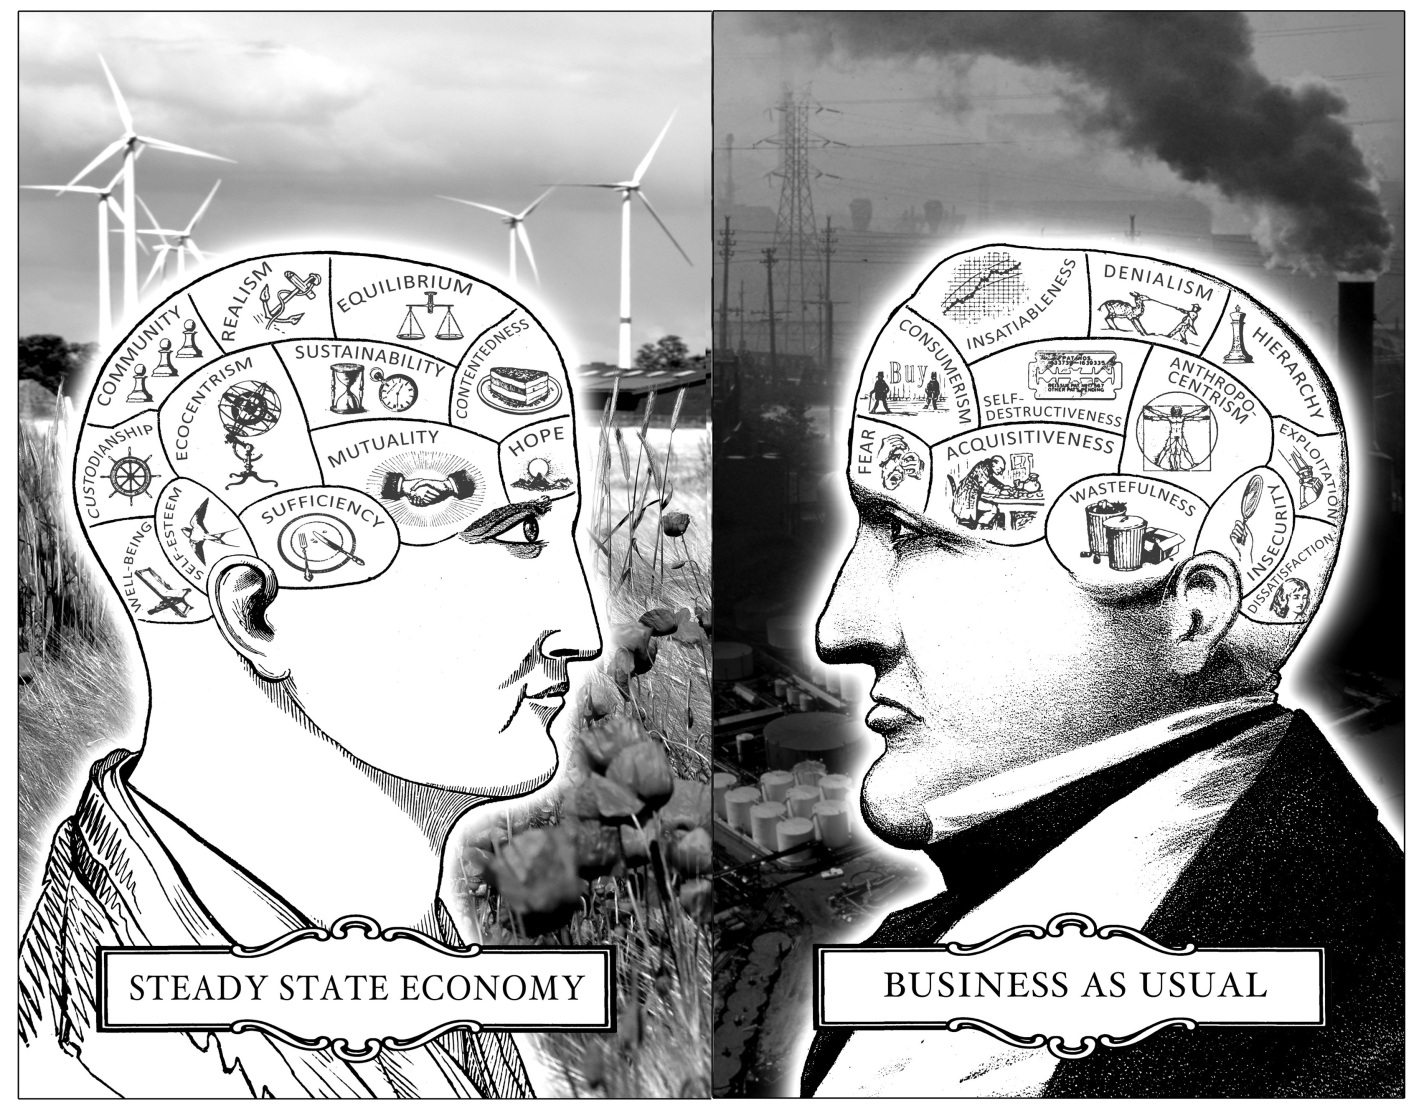 phrenology-headstogether-cropped.jpg